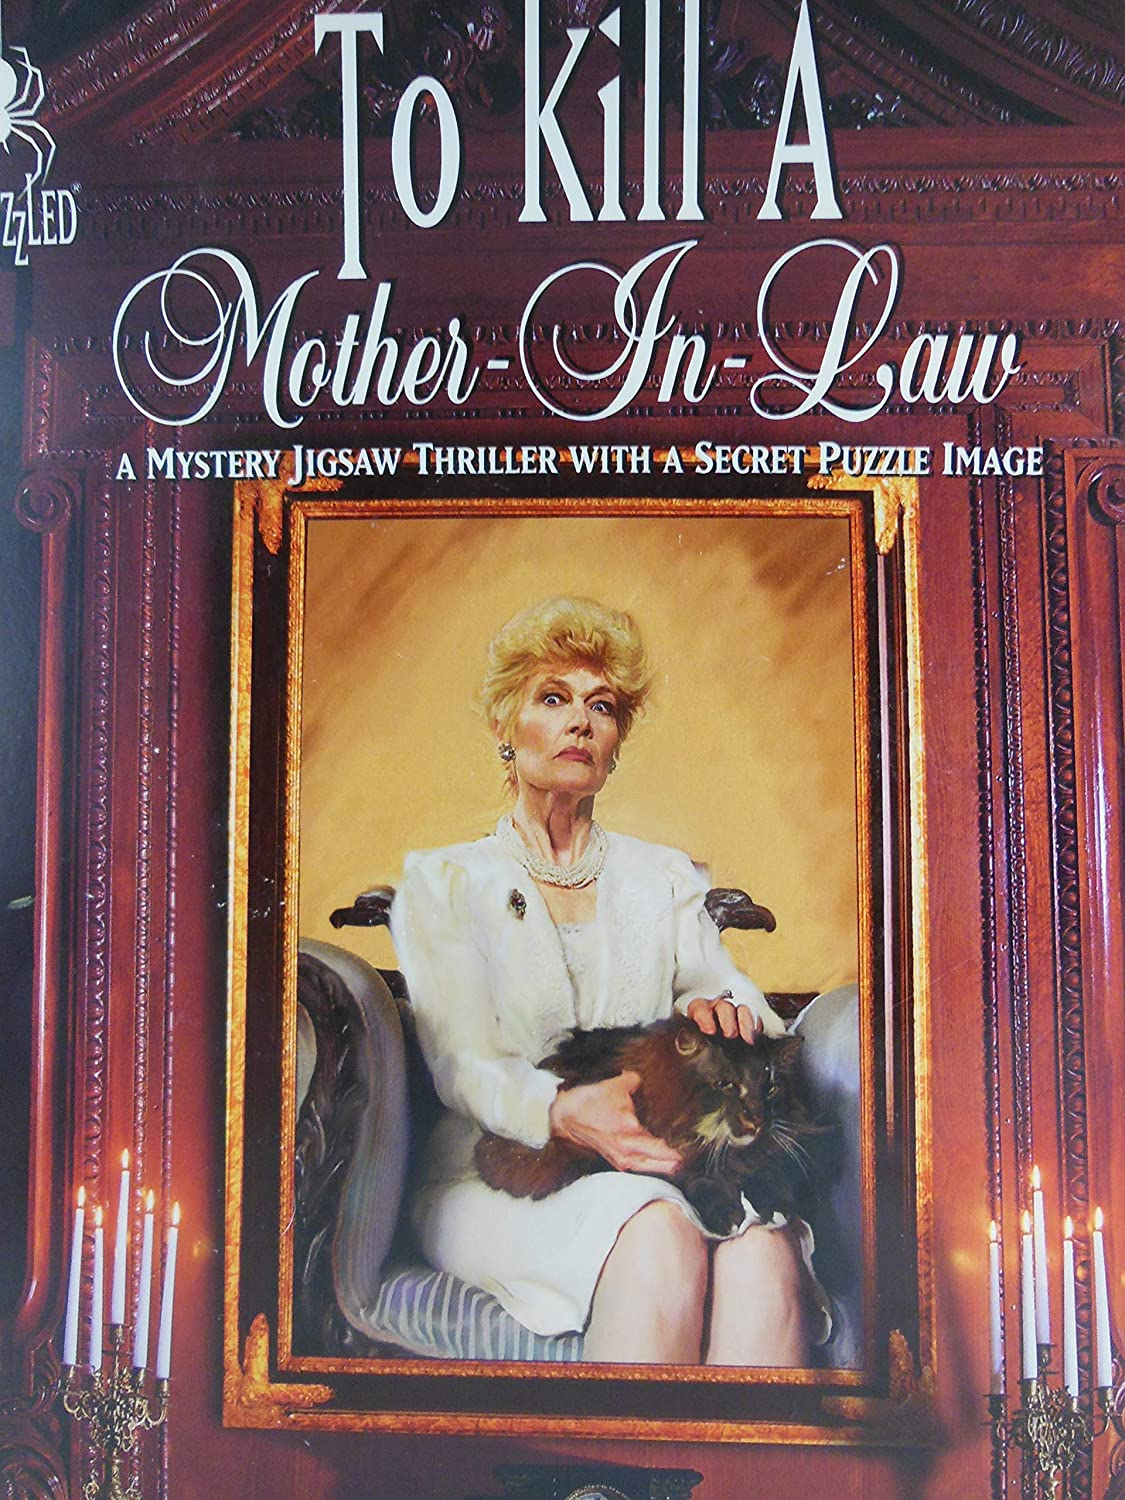 To Kill A MotherInLaw A Murder by Larry Zacher; 1000 Piece Mystery Jigsaw Puzzle by Bepuzzled